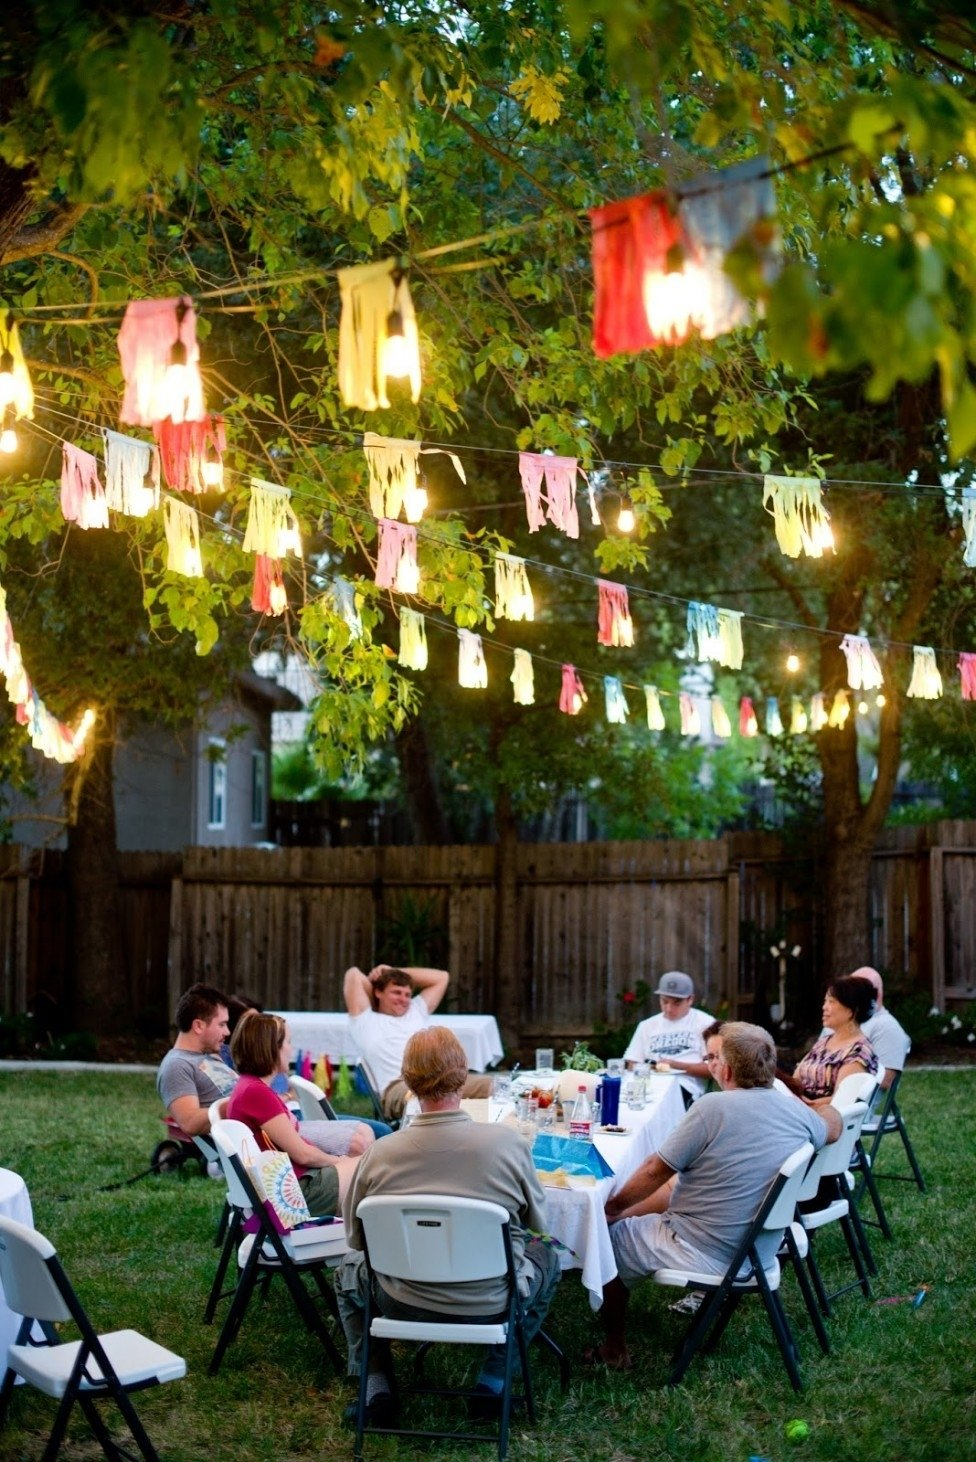 10 Famous Outdoor Birthday Party Ideas For Adults 2019